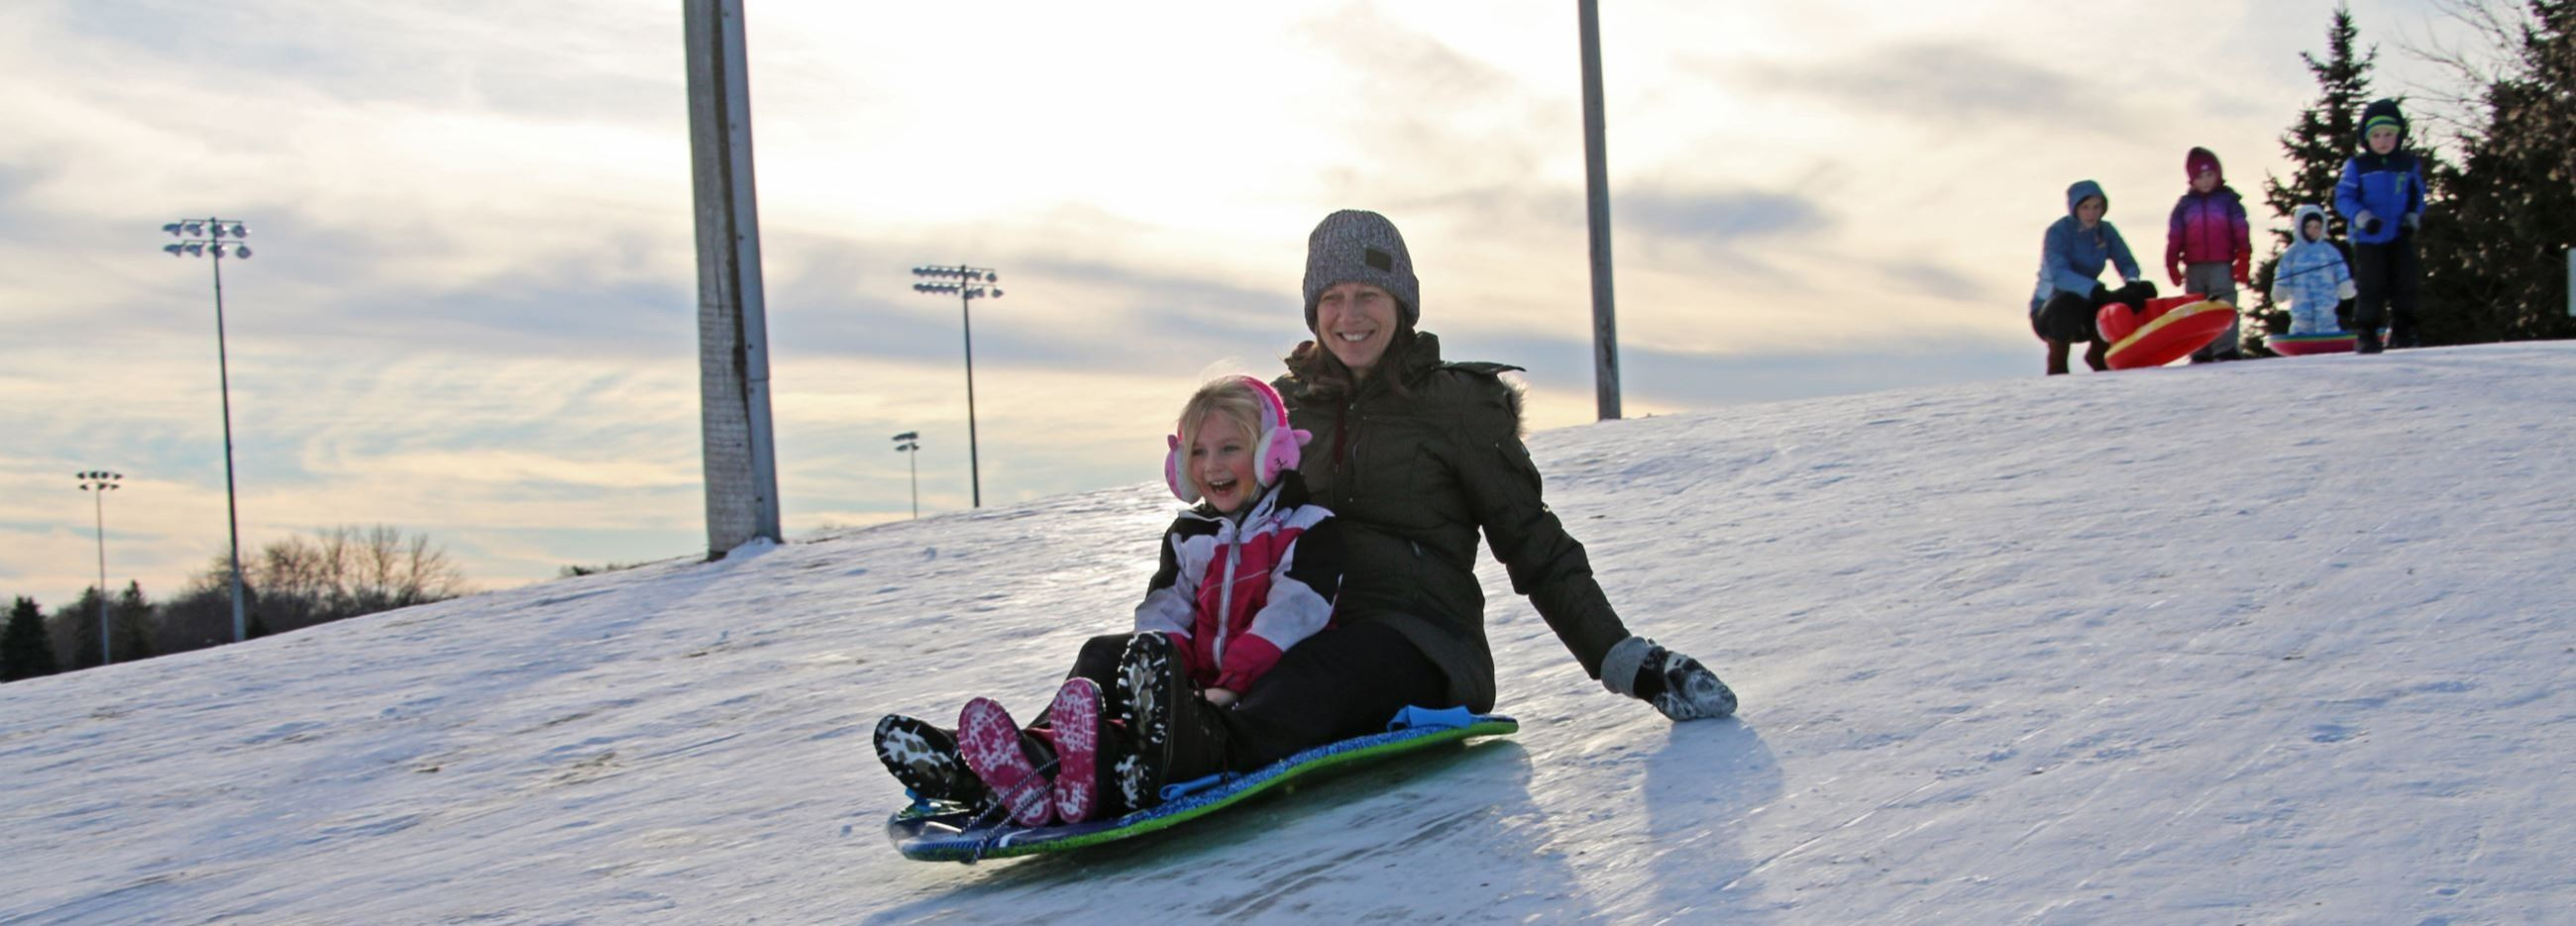 Grandmother and granddaughter sledding down the Wintercrest Park hill.